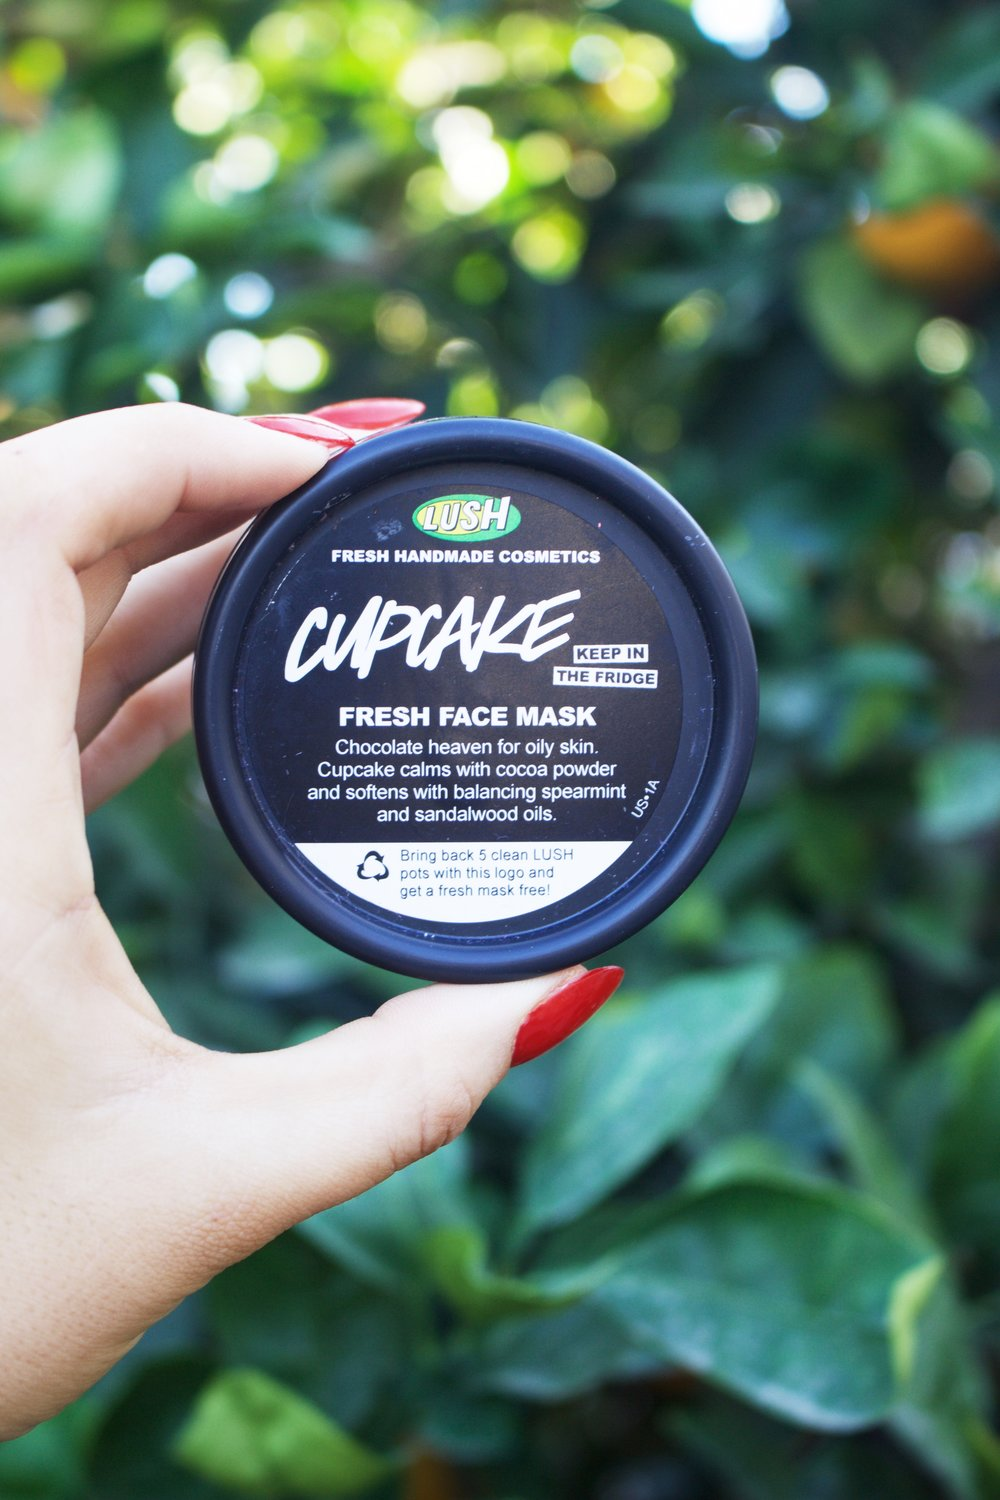 Treat Yo' Self - Grab a face mask... or if you're like me grab 20